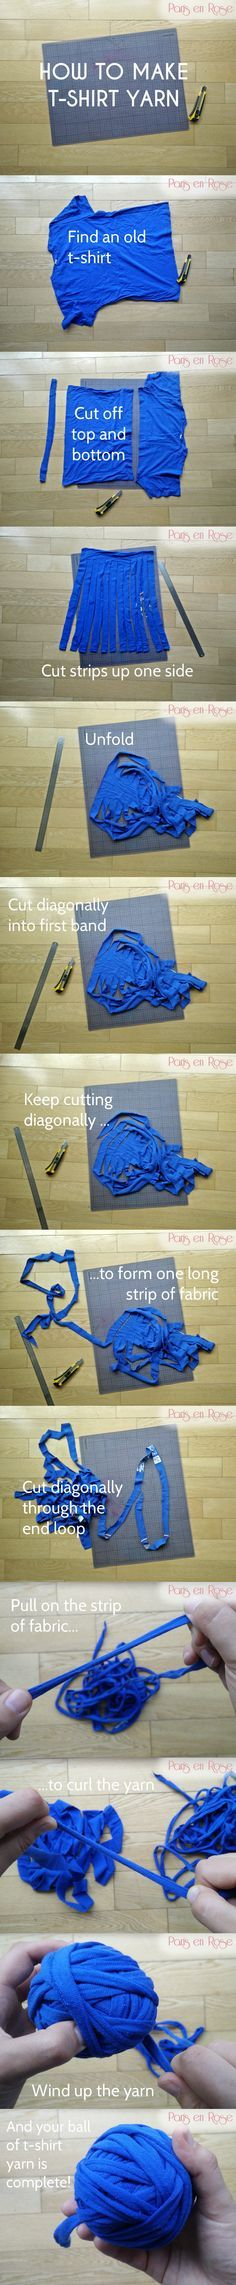 How to make t-shirt yarn : recycle old t-shirst into something new by cutting them up to make yarn